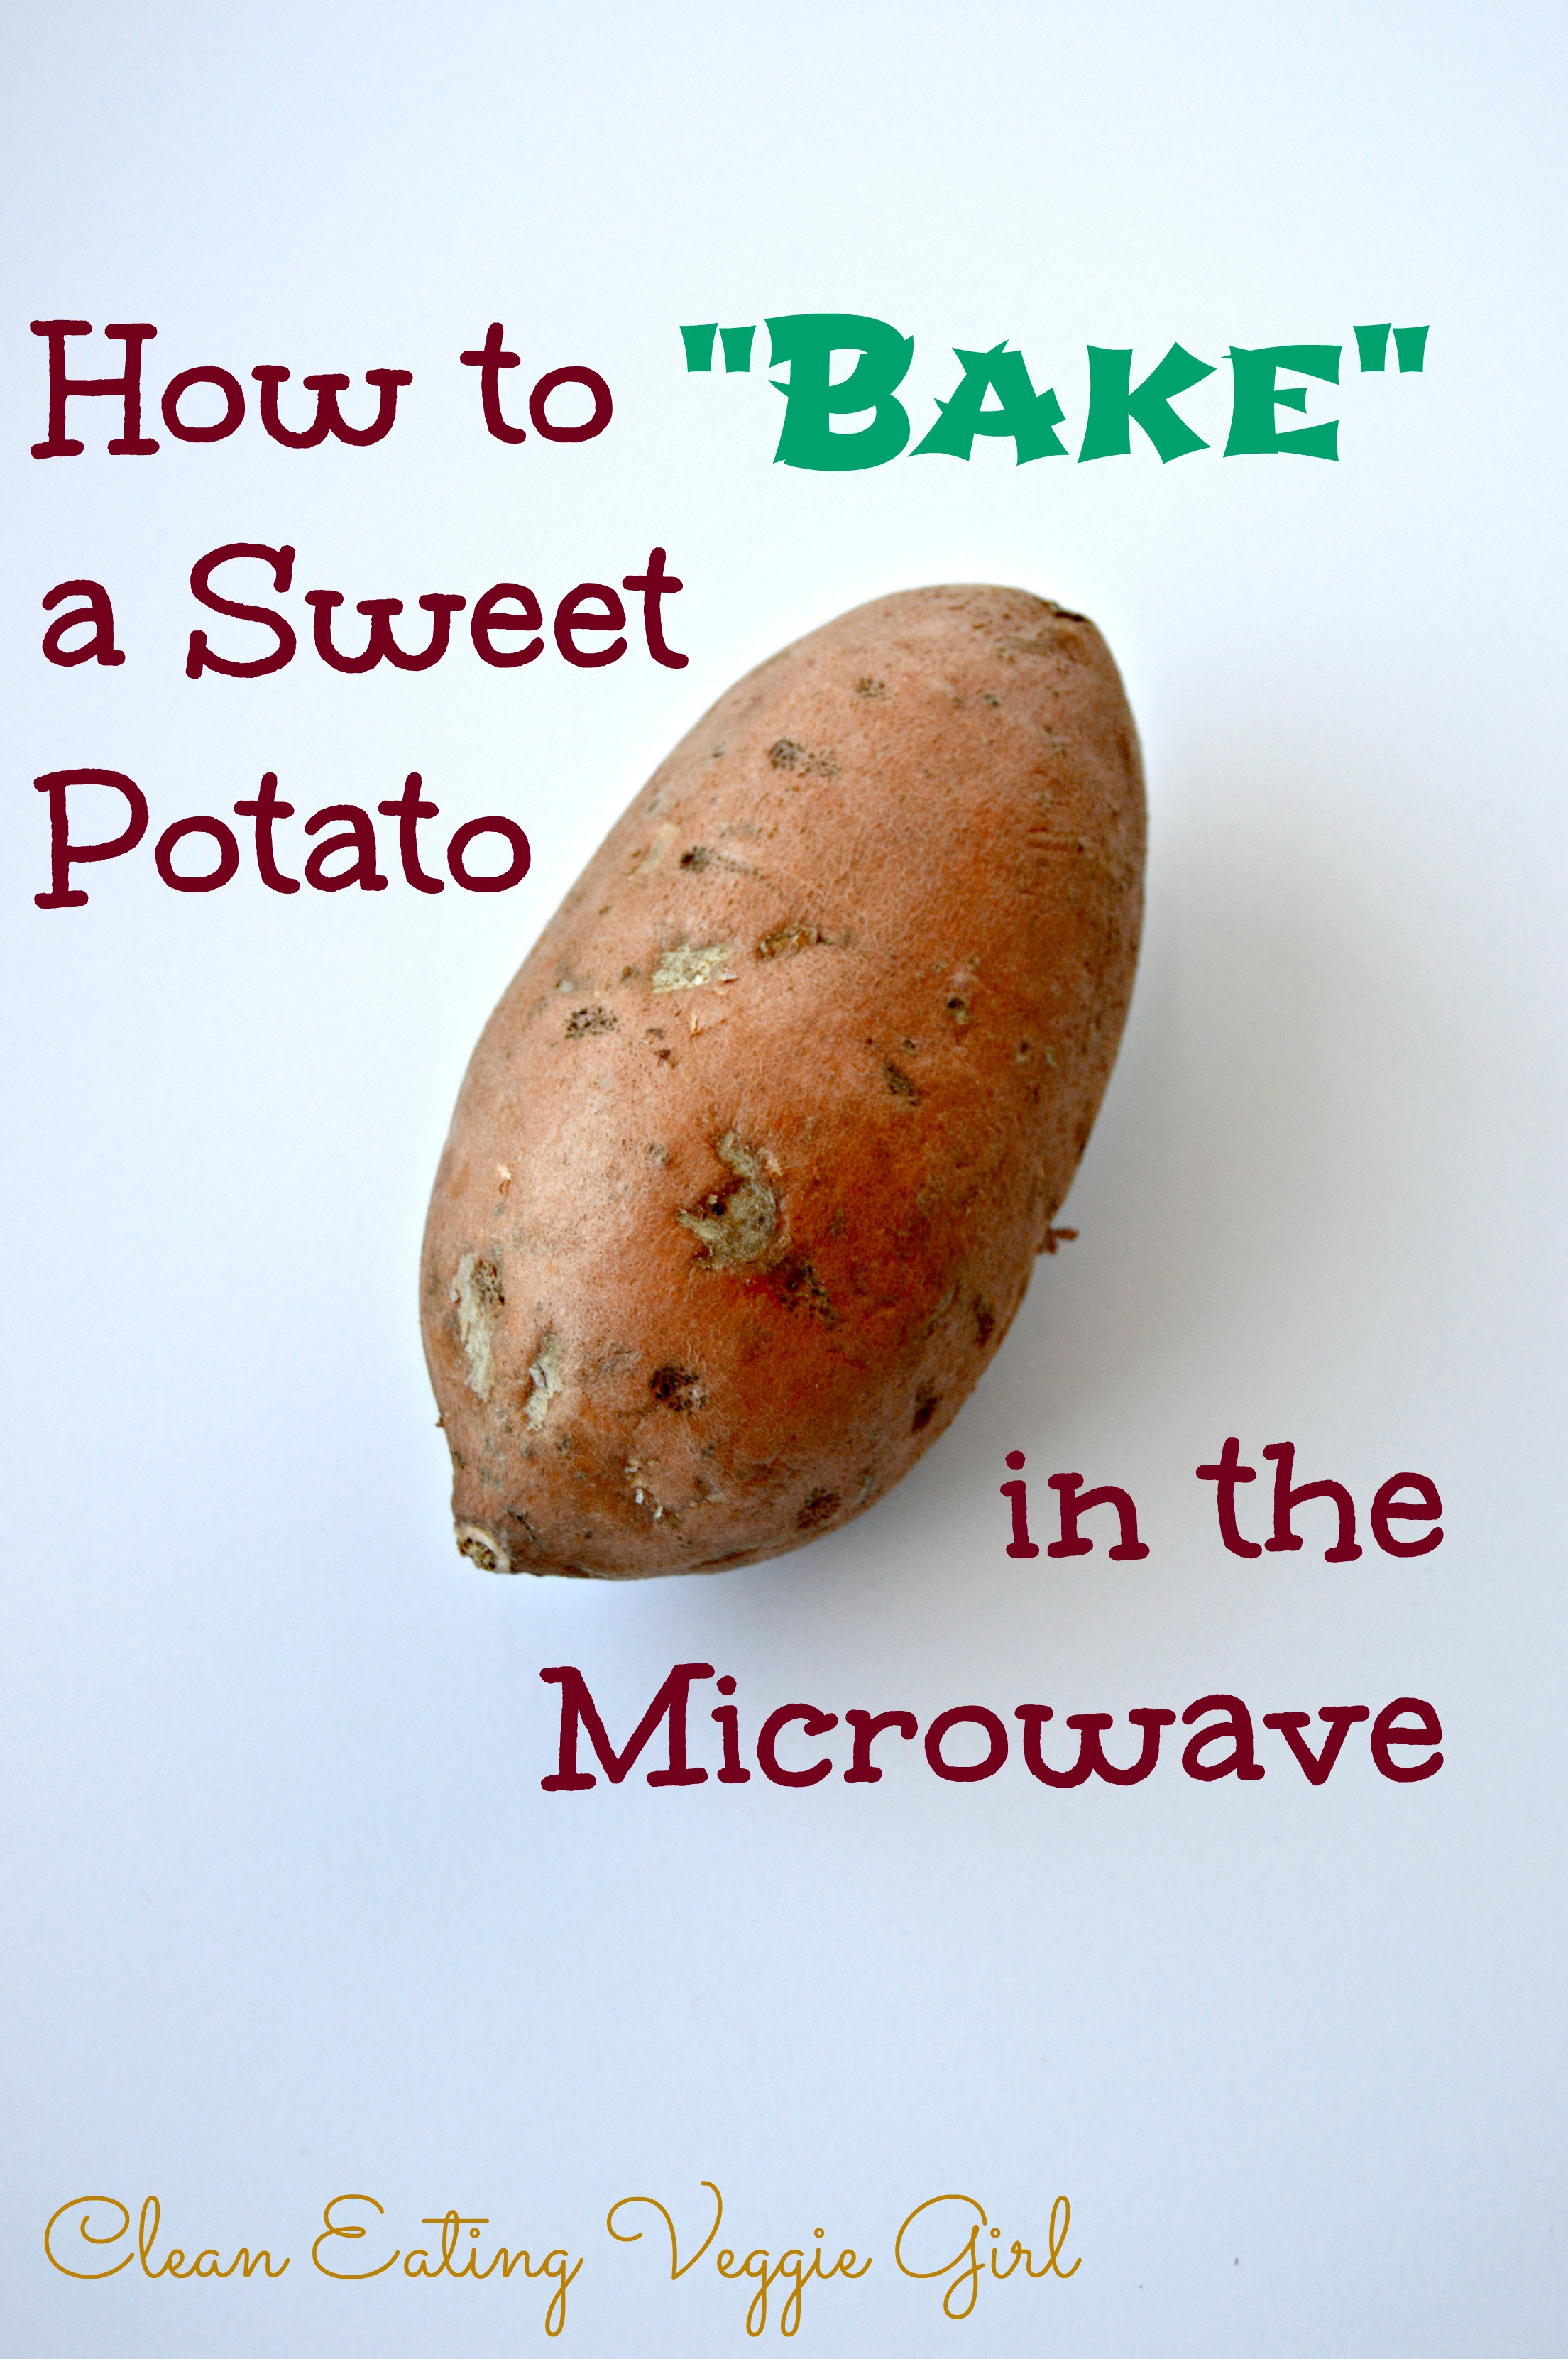 How Long Baked Potato  How to Make a Baked Sweet Potato in the Microwave Clean